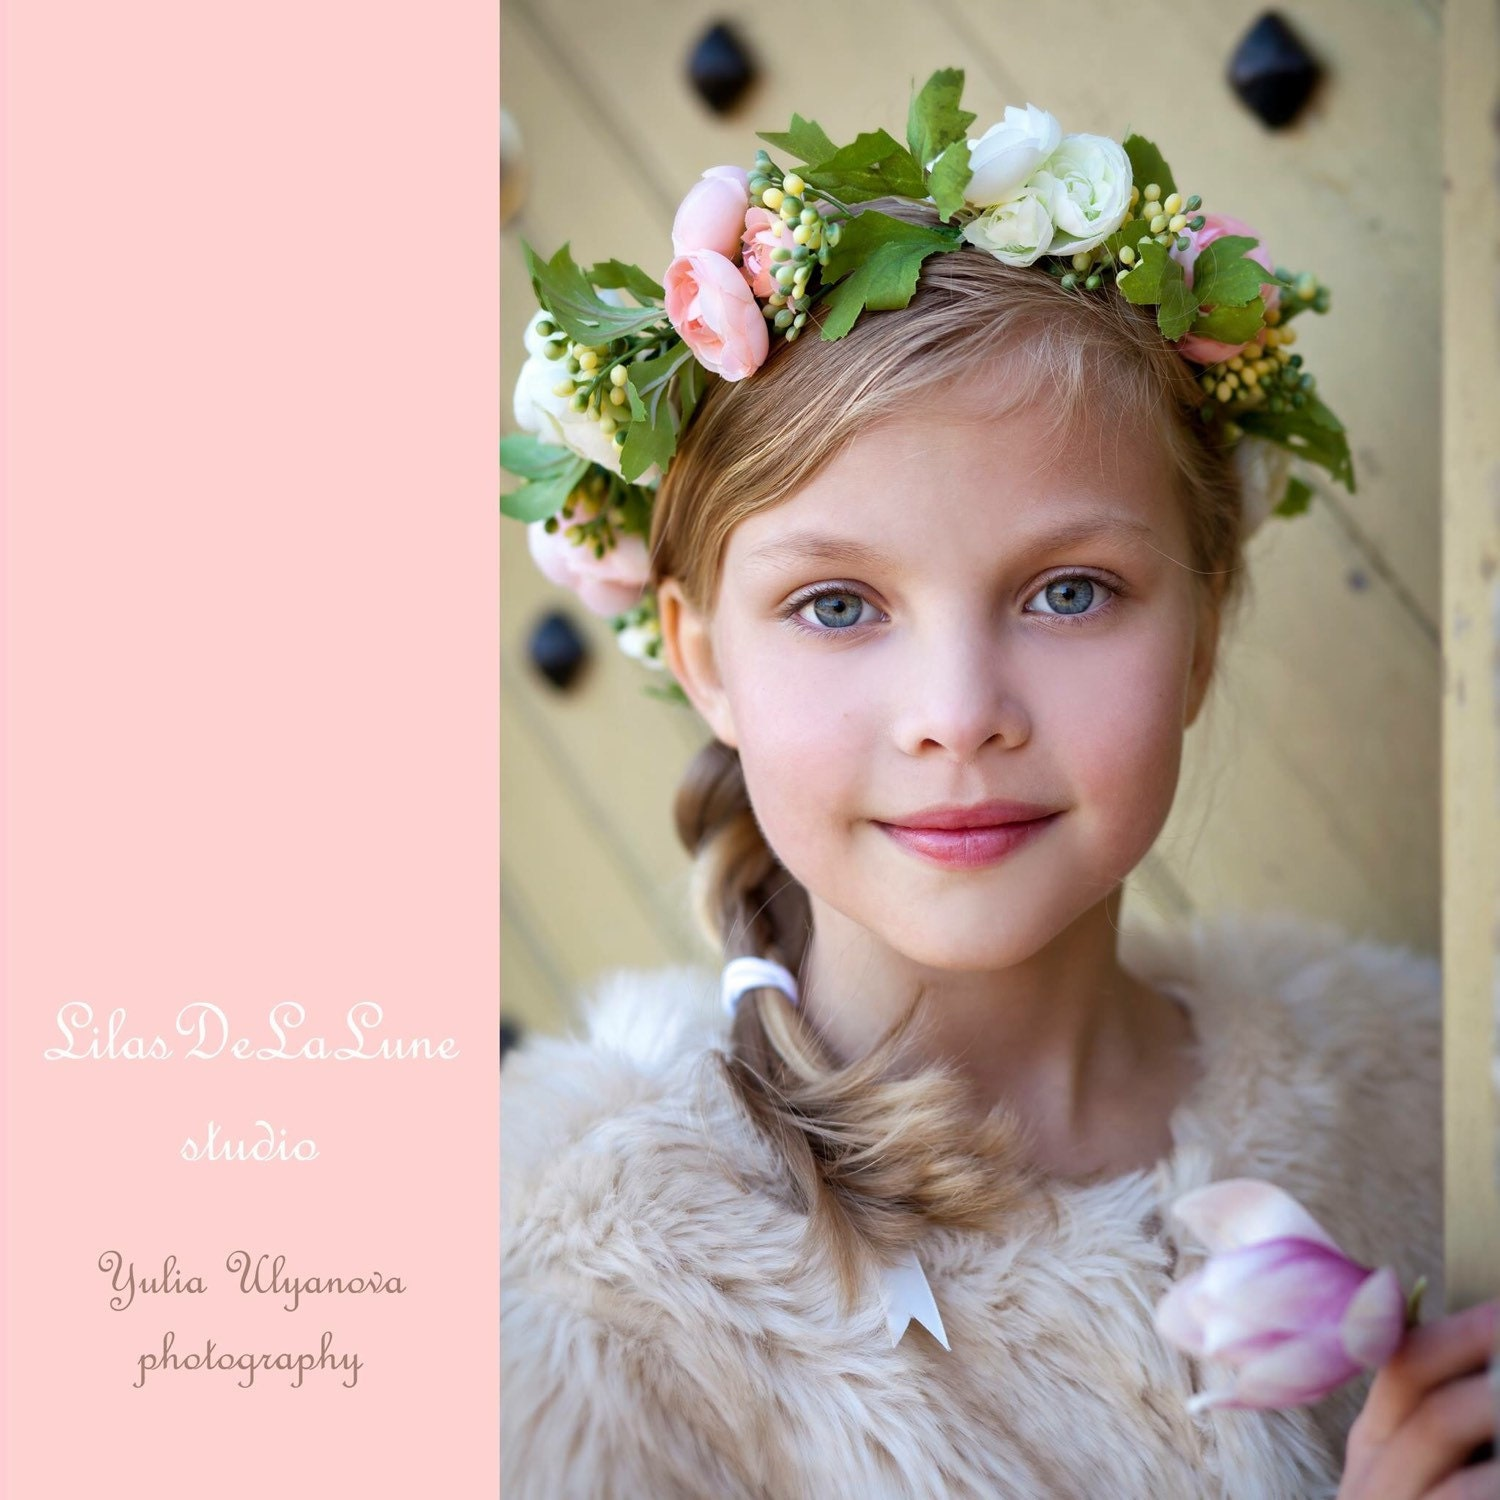 Baby child toddler flower crown headbandgirl flower crown description stunning girl flower crown izmirmasajfo Gallery